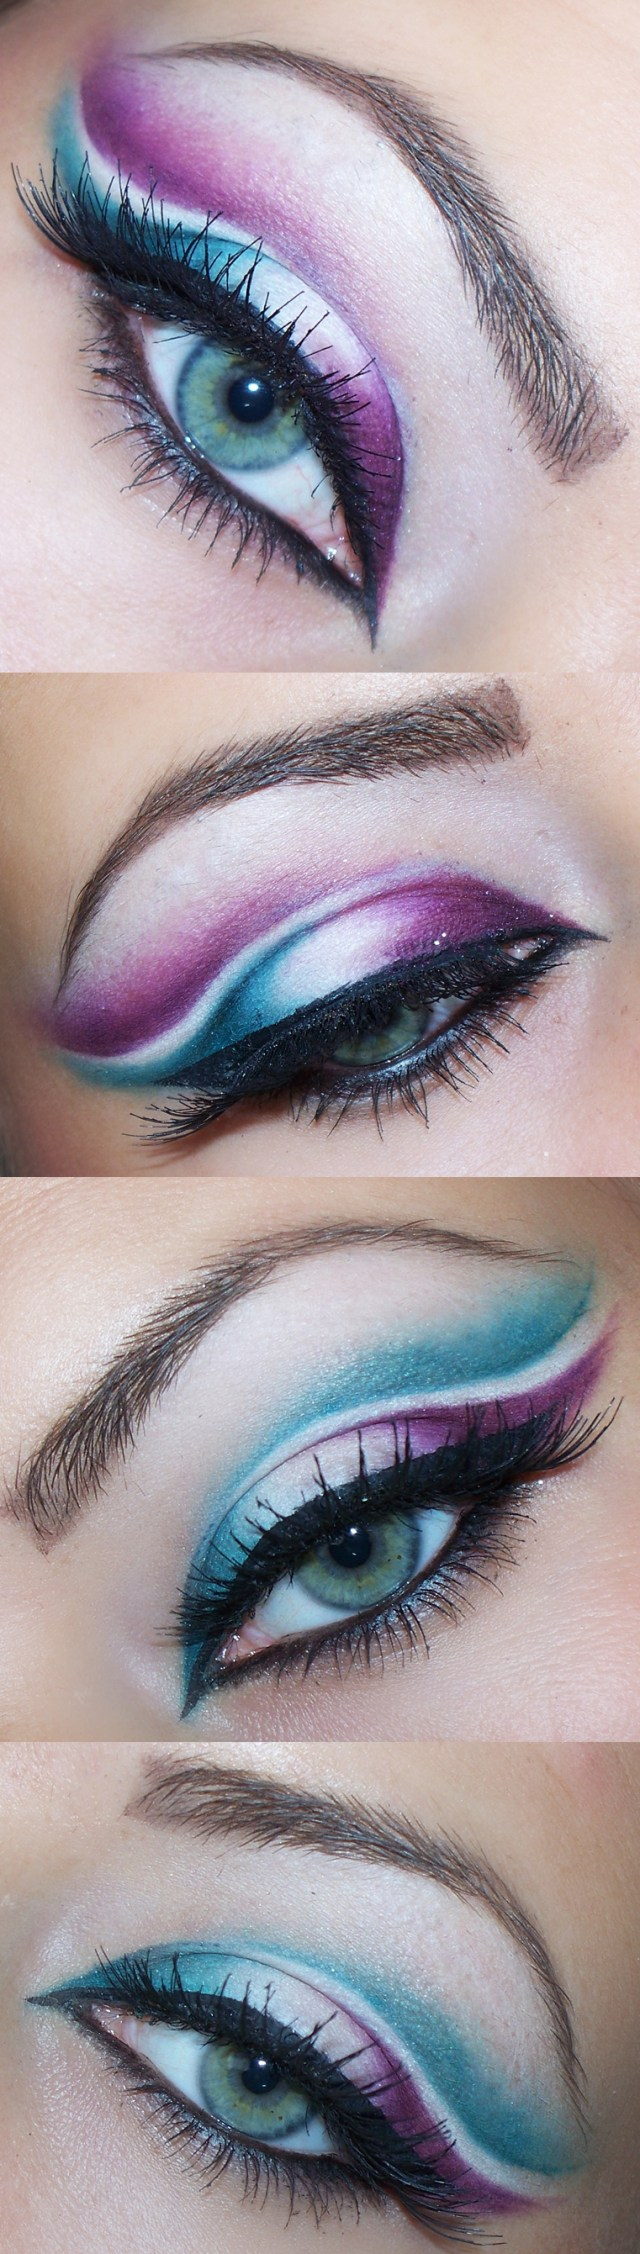 Makeup Designs For Eyes Best Eye Makeup Ideas For Blue Eyes Pretty Designs